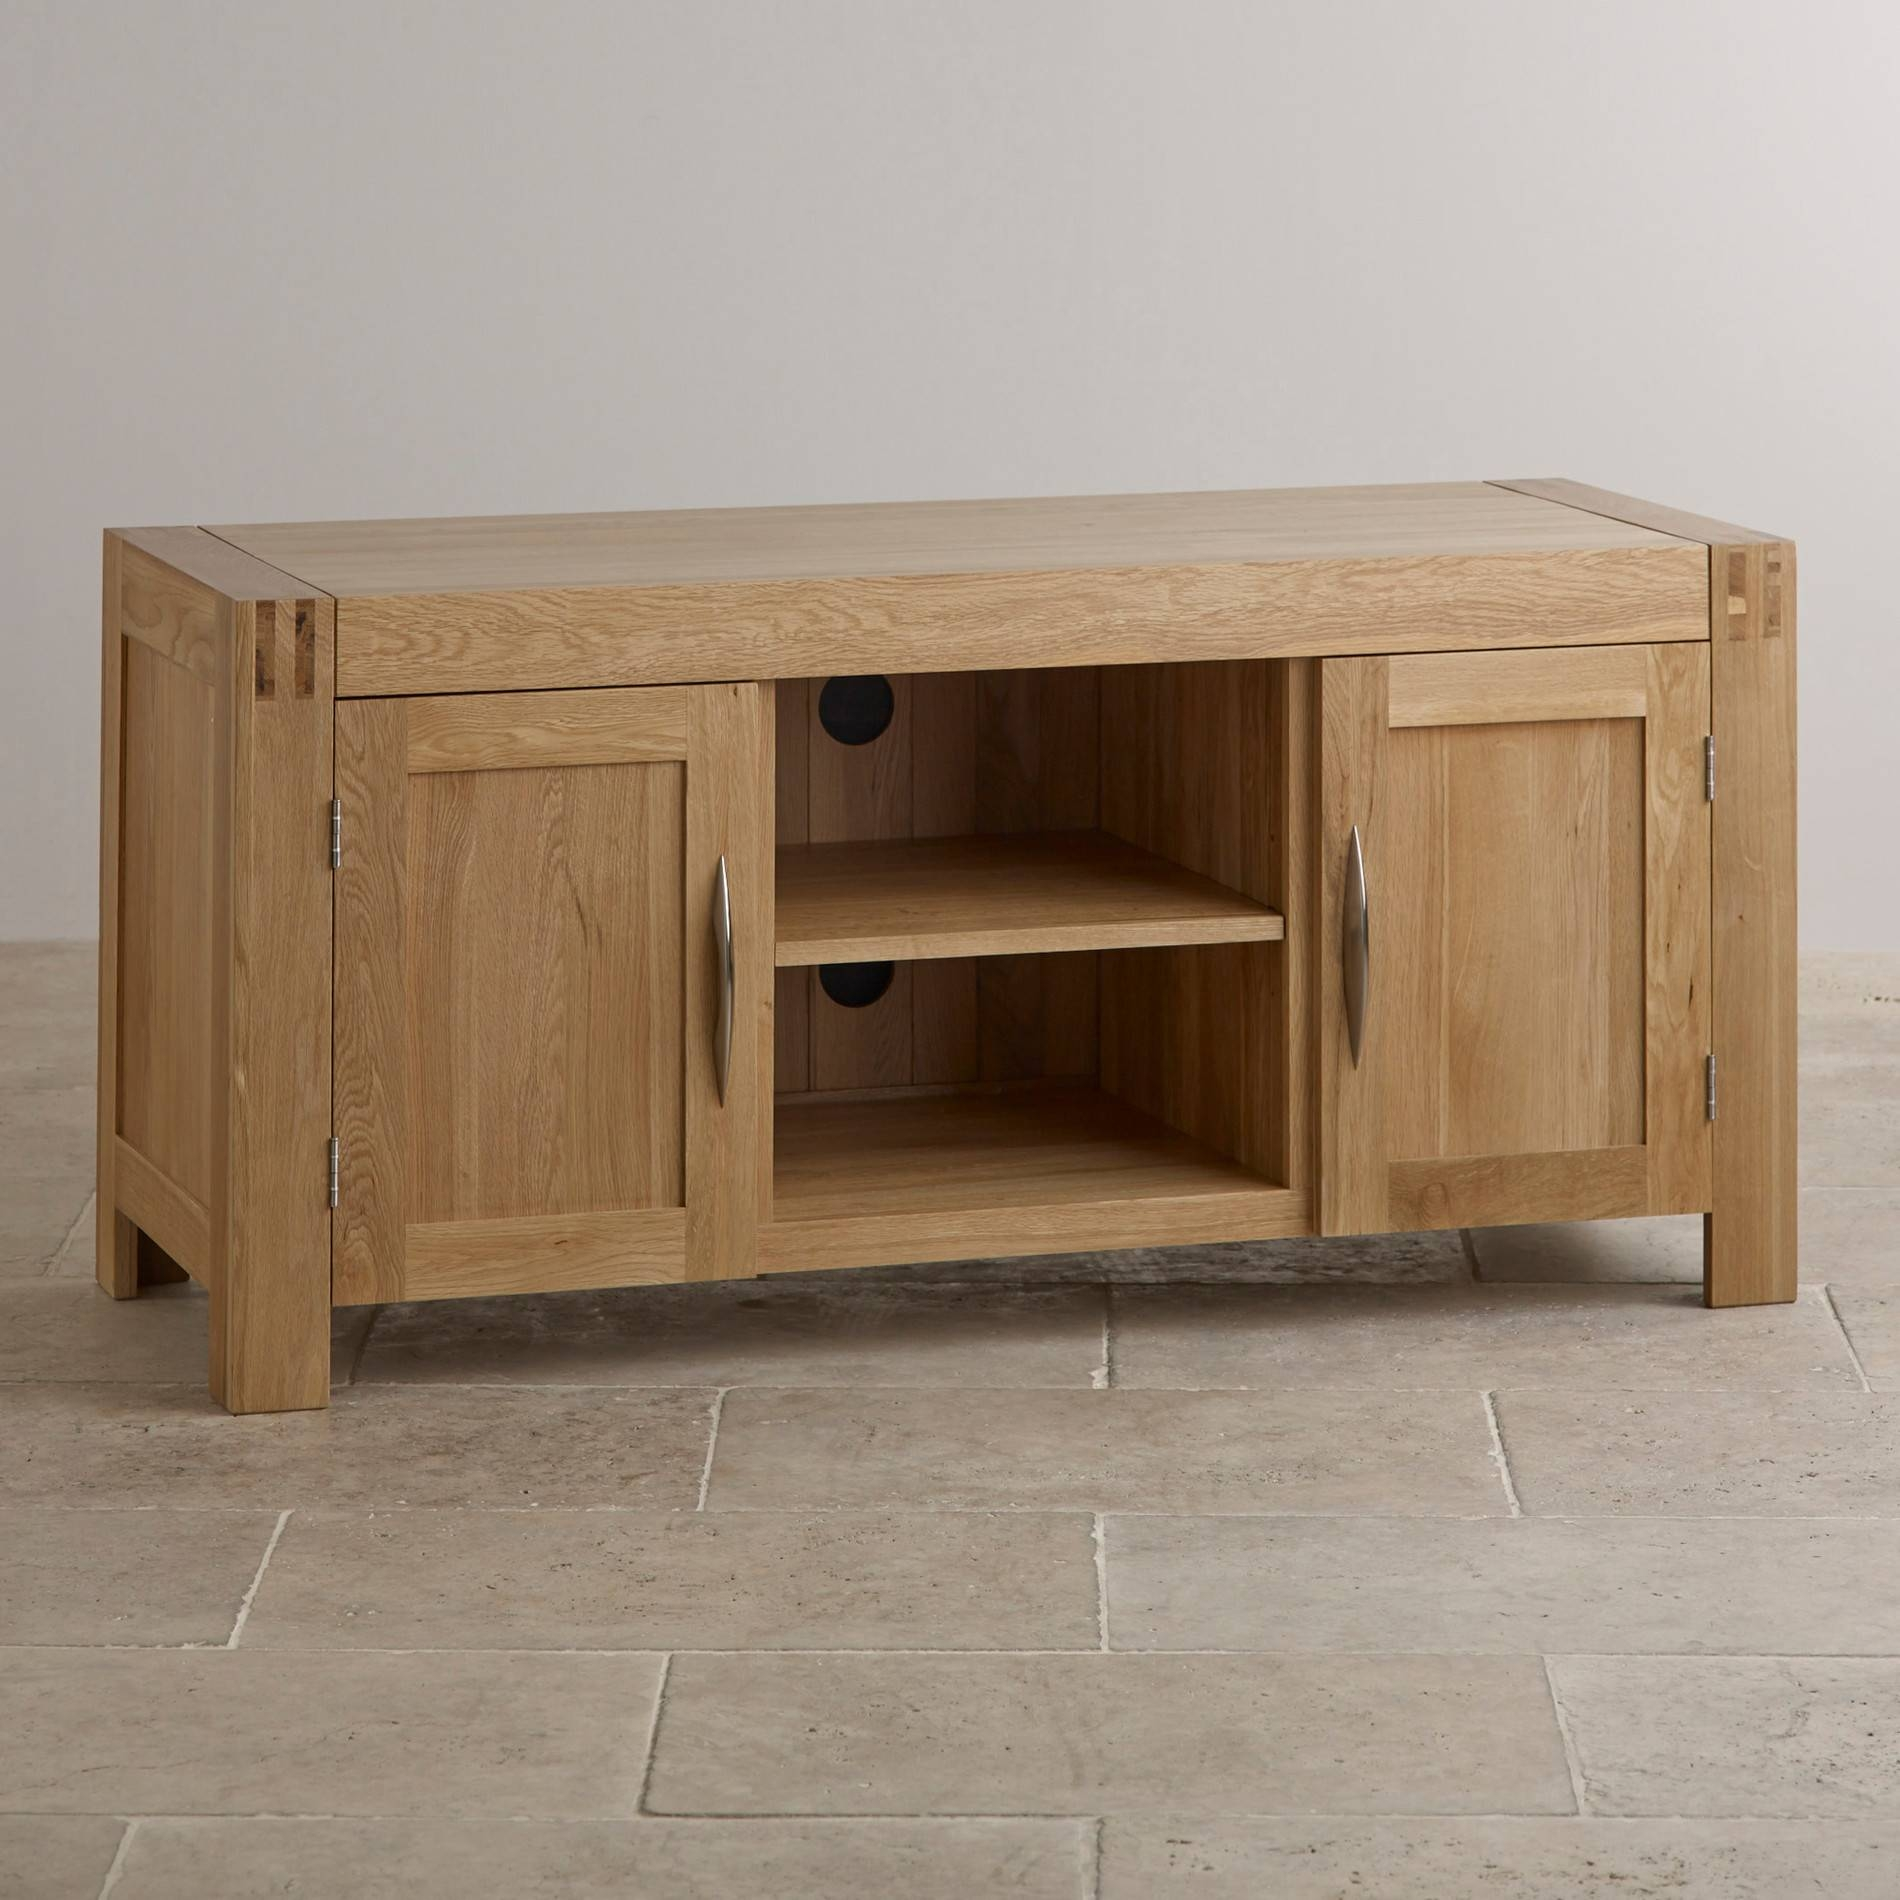 Alto Tv Cabinet In Solid Oak | Oak Furniture Land intended for Widescreen Tv Cabinets (Image 1 of 15)